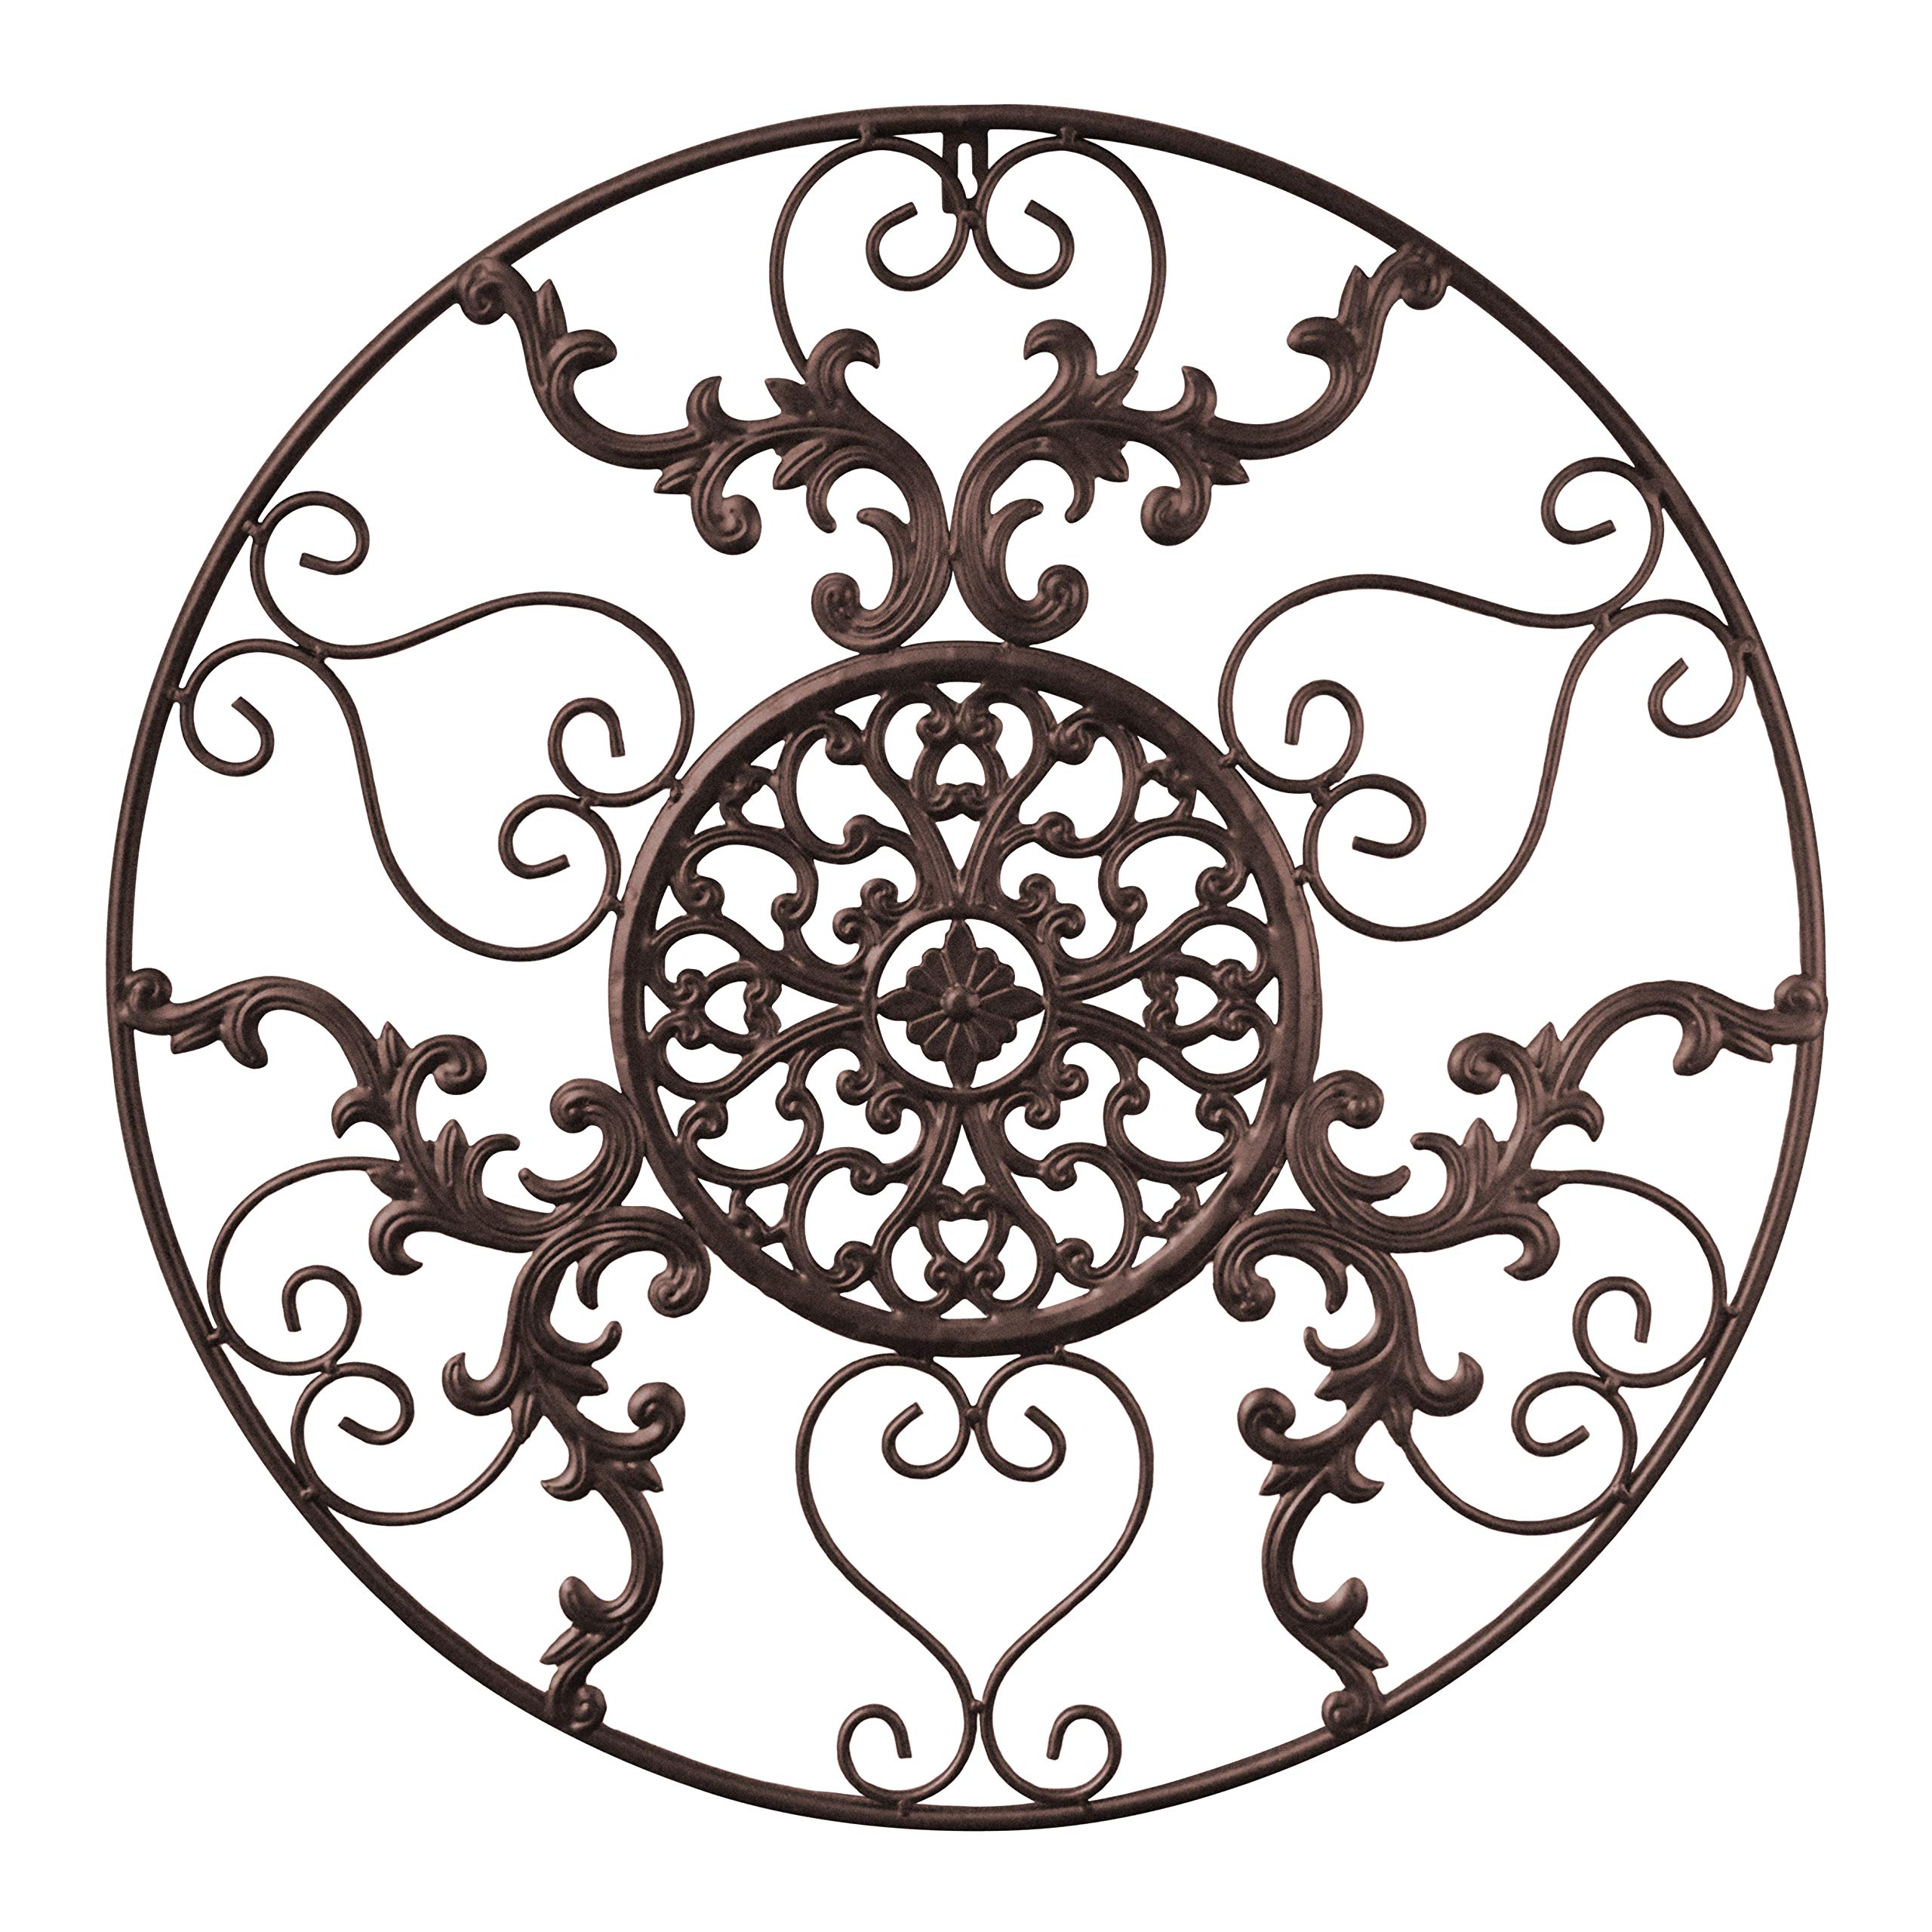 GB HOME COLLECTION Metal Wall Decor, Decorative Victorian Style Hanging Art, Steel Decor, Circular Medallion Design, 23.5 x 23.5 Inches, Espresso Brown Circle by GB HOME COLLECTION